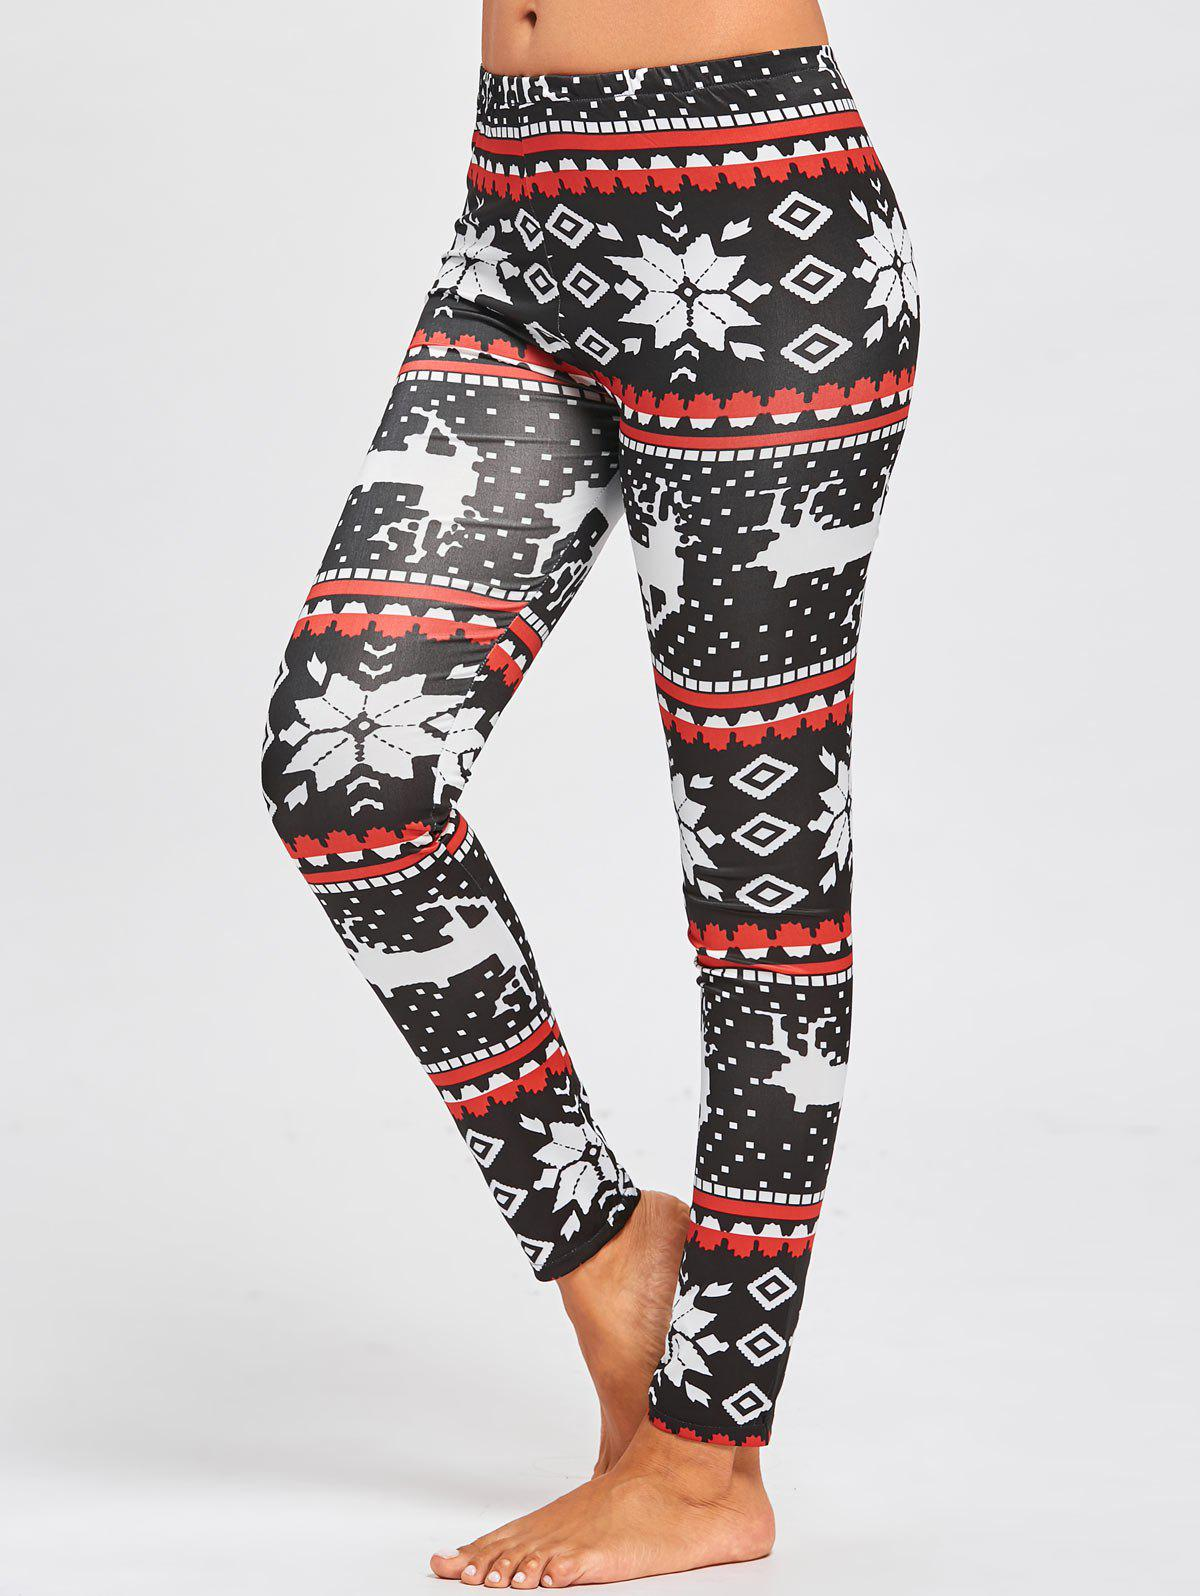 Christmas Snowflake ELK Printed Slim LeggingsWOMEN<br><br>Size: M; Color: FLORAL; Style: Fashion; Length: Ninth; Material: Polyester; Fit Type: Skinny; Waist Type: Mid; Closure Type: Elastic Waist; Pattern Type: Print; Pant Style: Pencil Pants; Weight: 0.2200kg; Package Contents: 1 x Leggings;